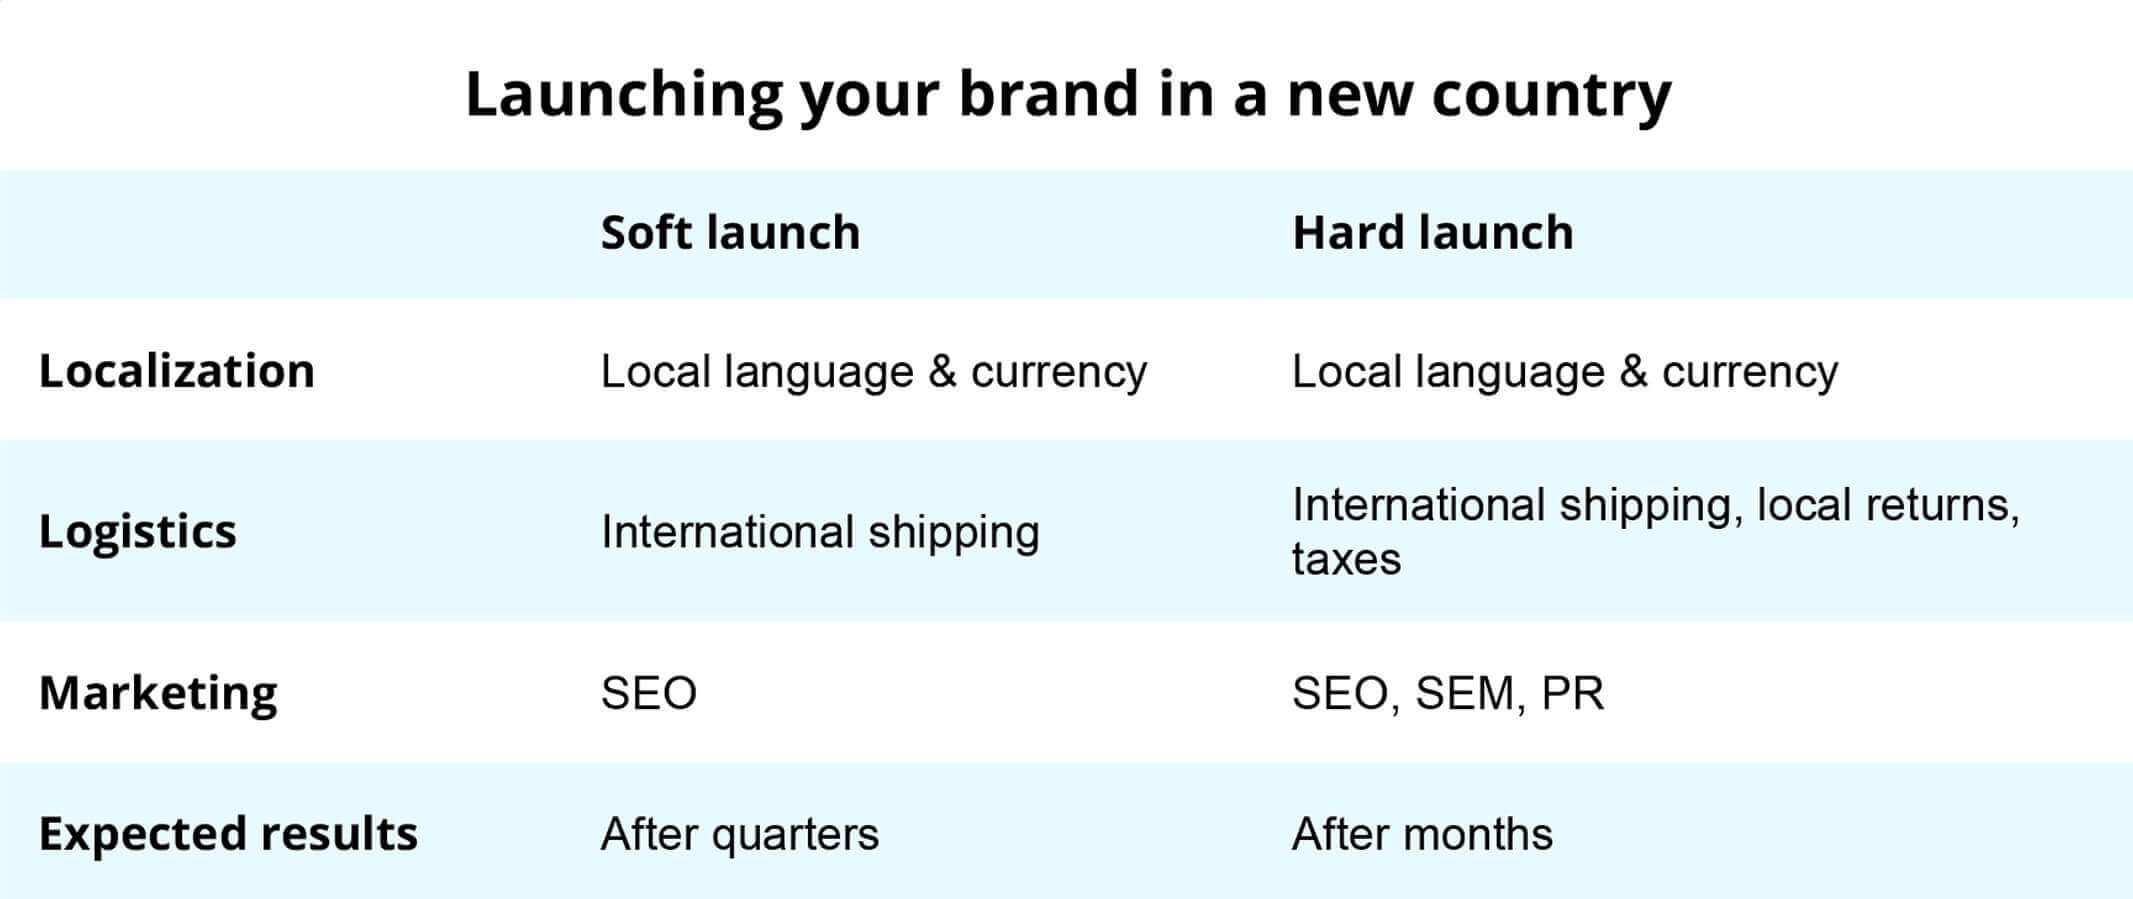 global-ecommerce-launch-your-brand